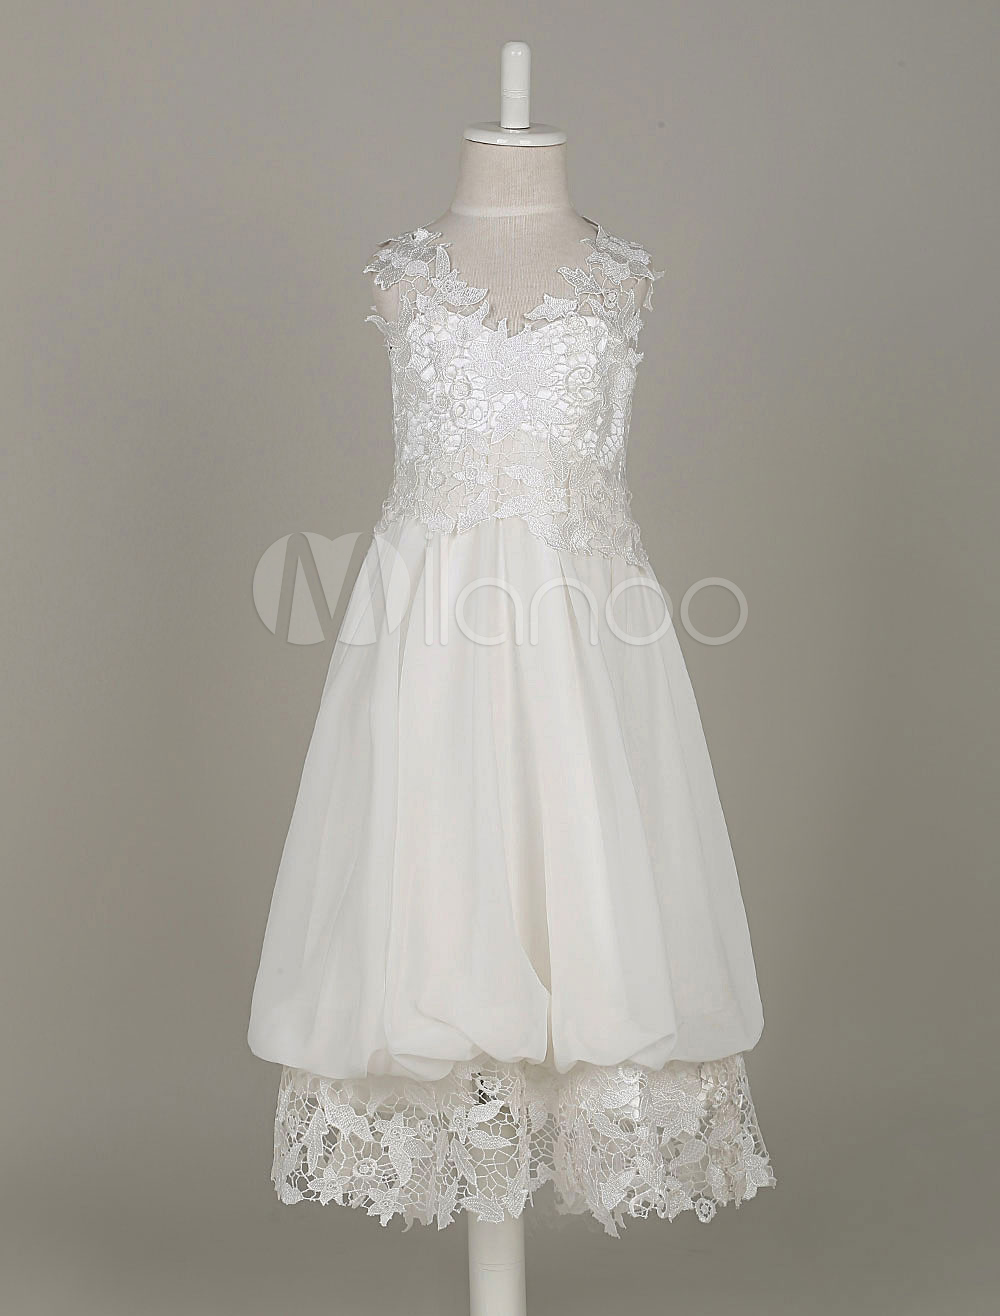 Ivory Junior Bridesmaid Dresses Lace V Neck Chiffon A Line Knee Length Kids Boho Flower Girl Dresses